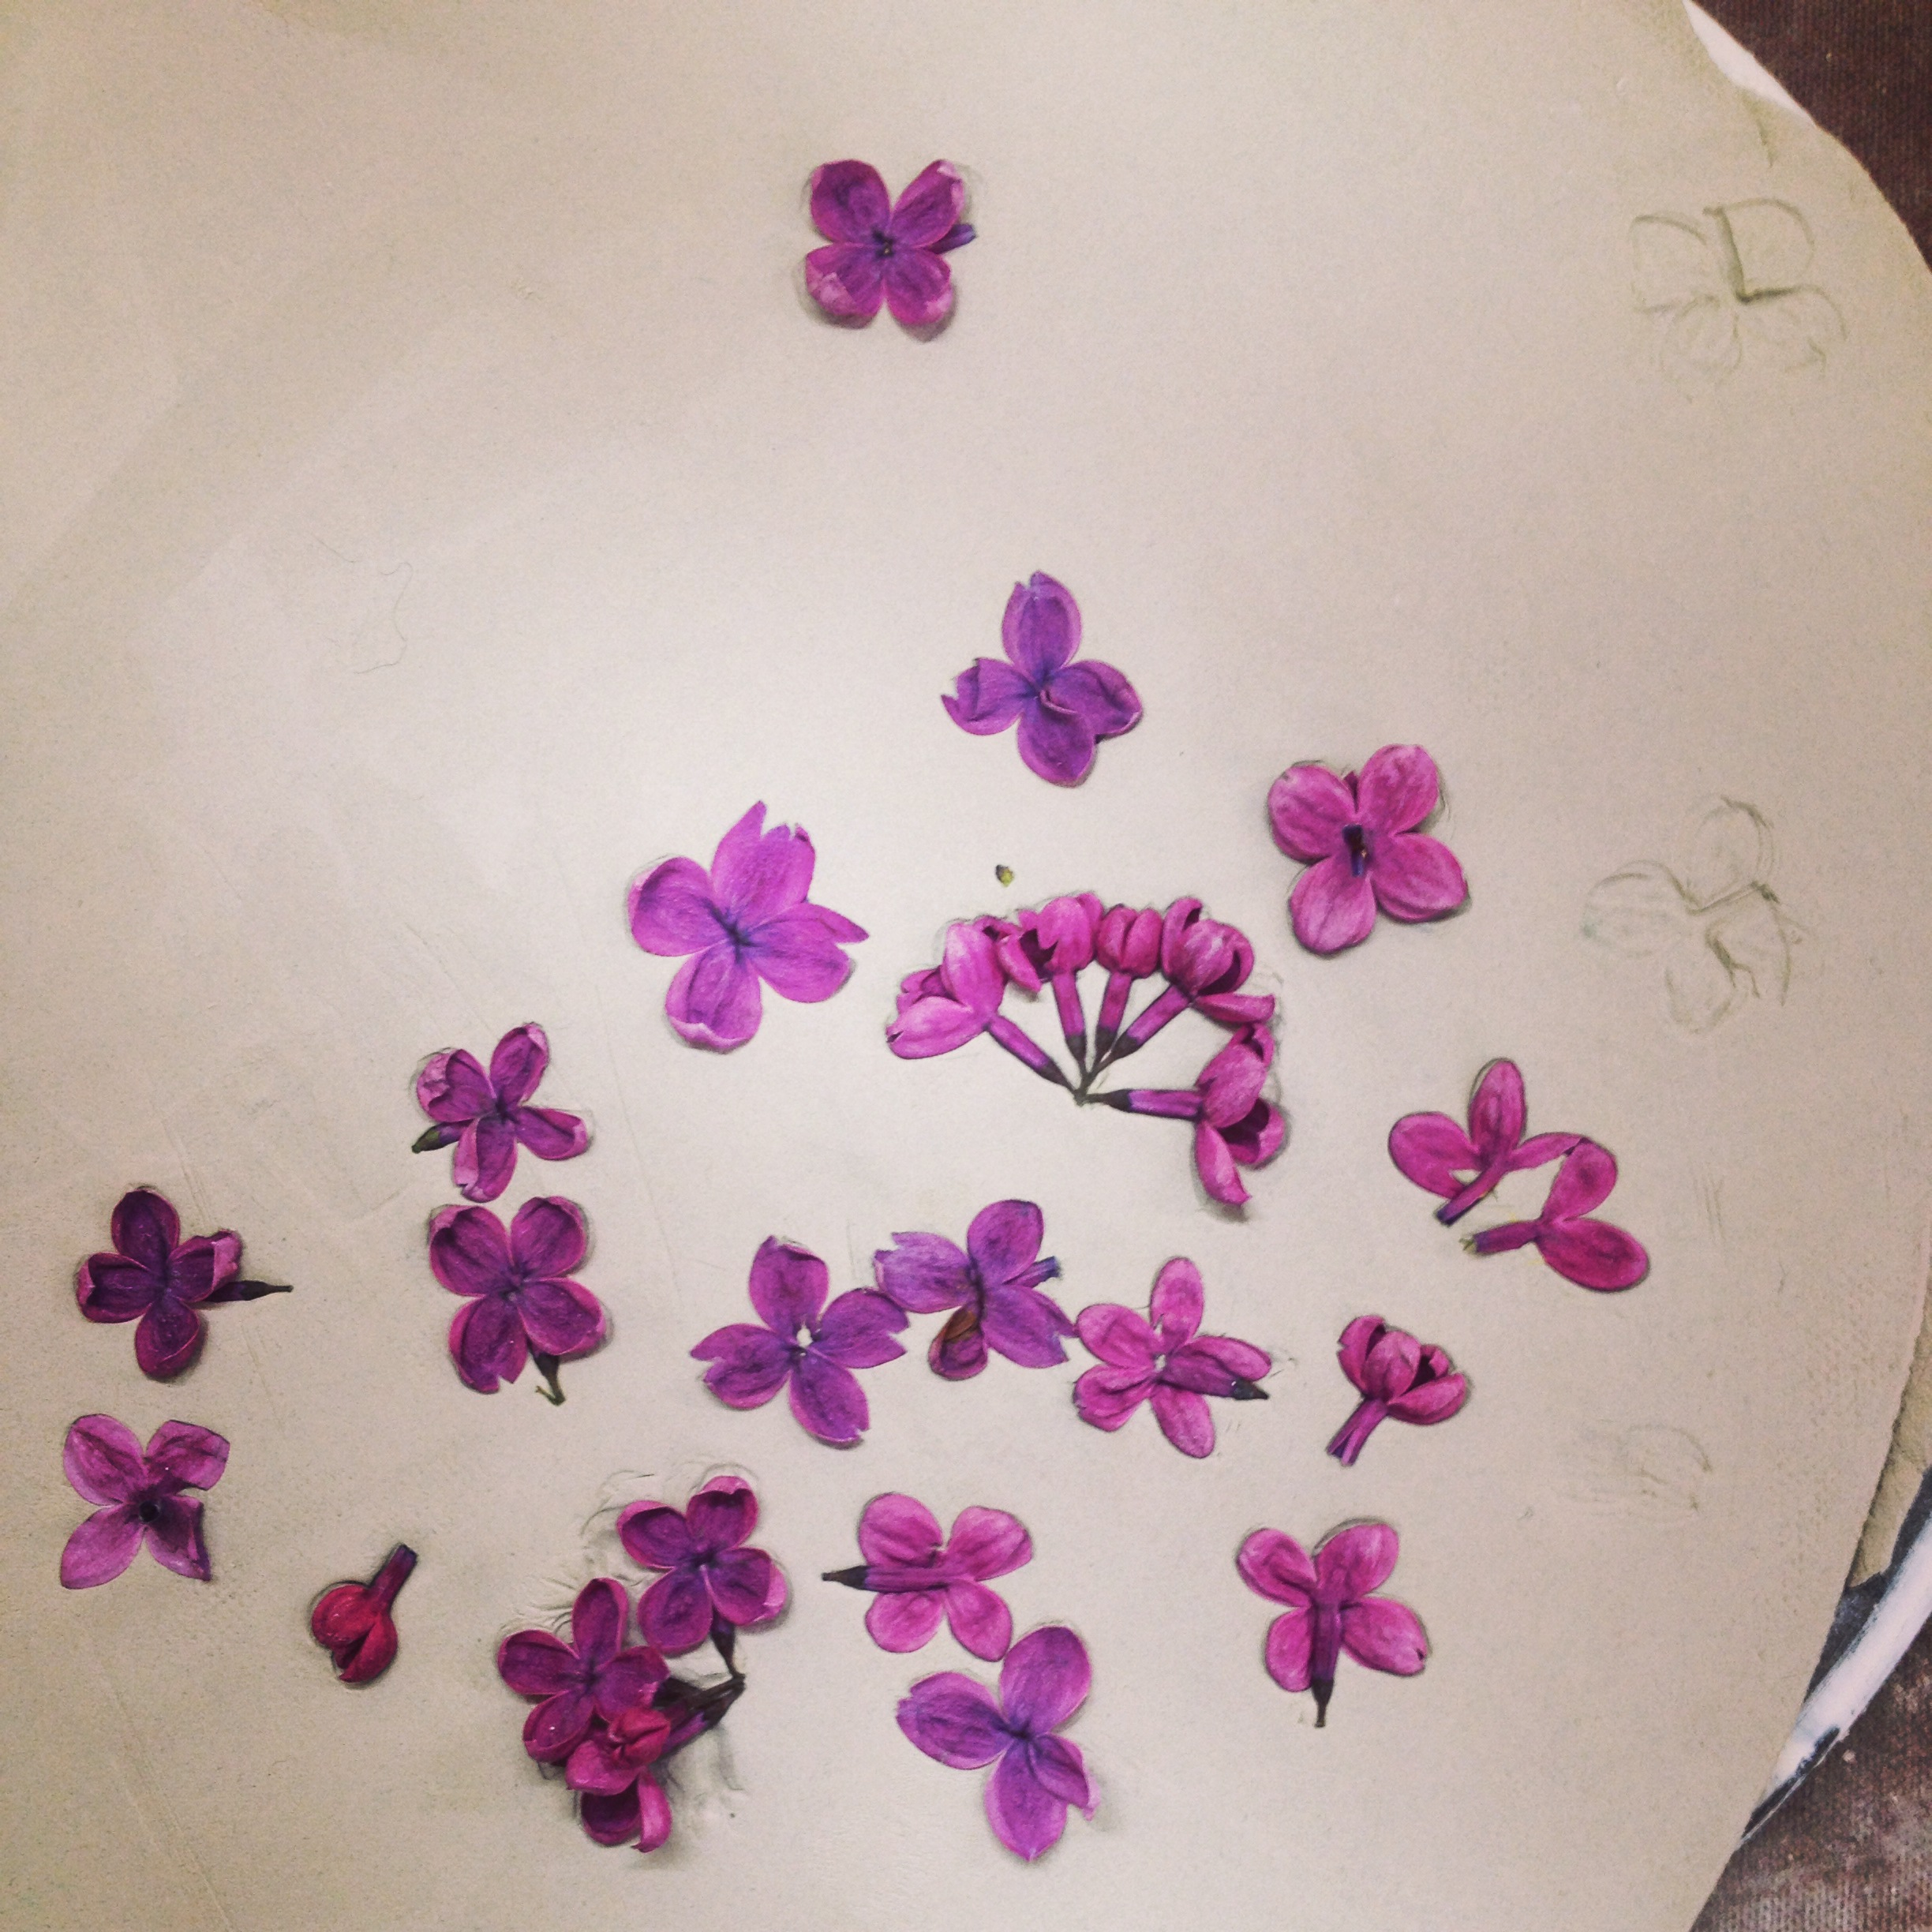 Rolling lilacs into clay.